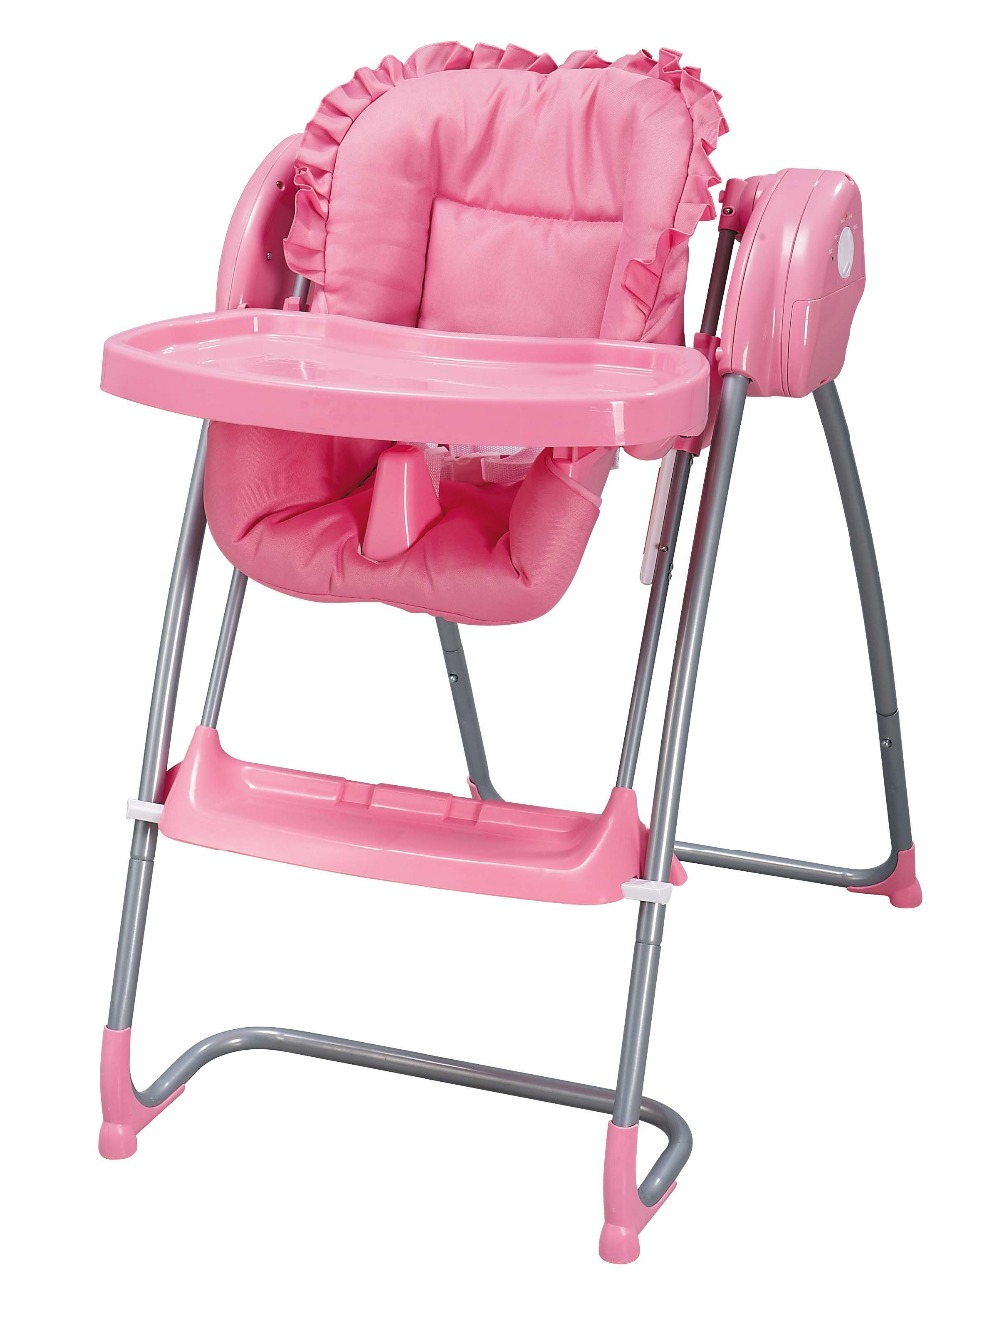 Bargain Baby Feeding Chair With Dining Table Babyyuga (Pink ...